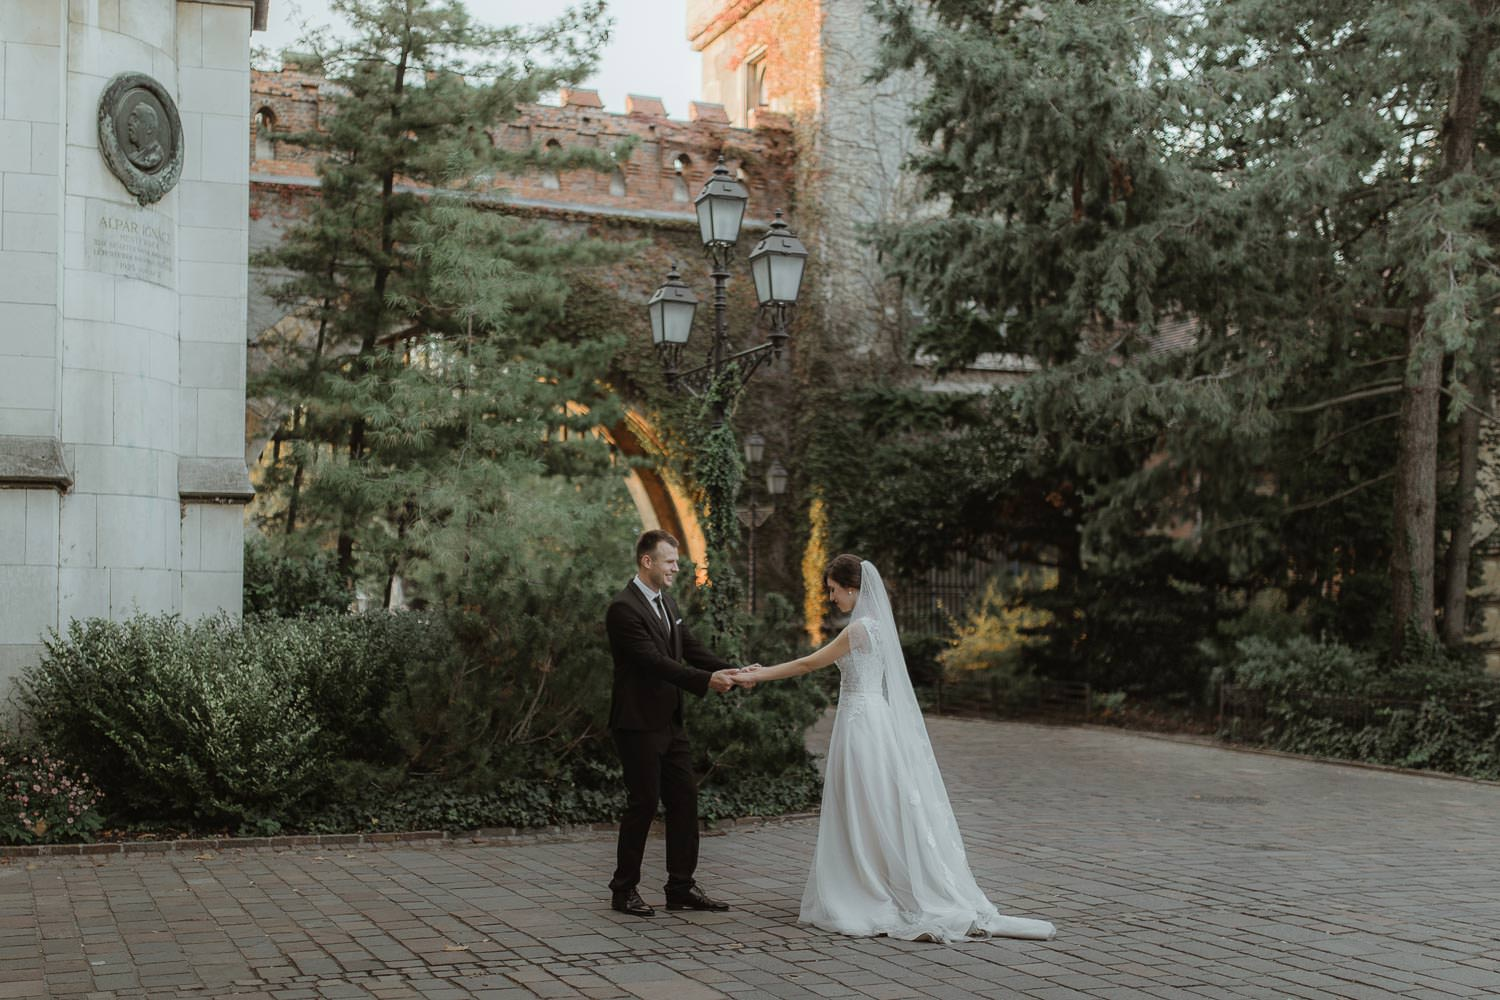 Castle wedding venue Budapest